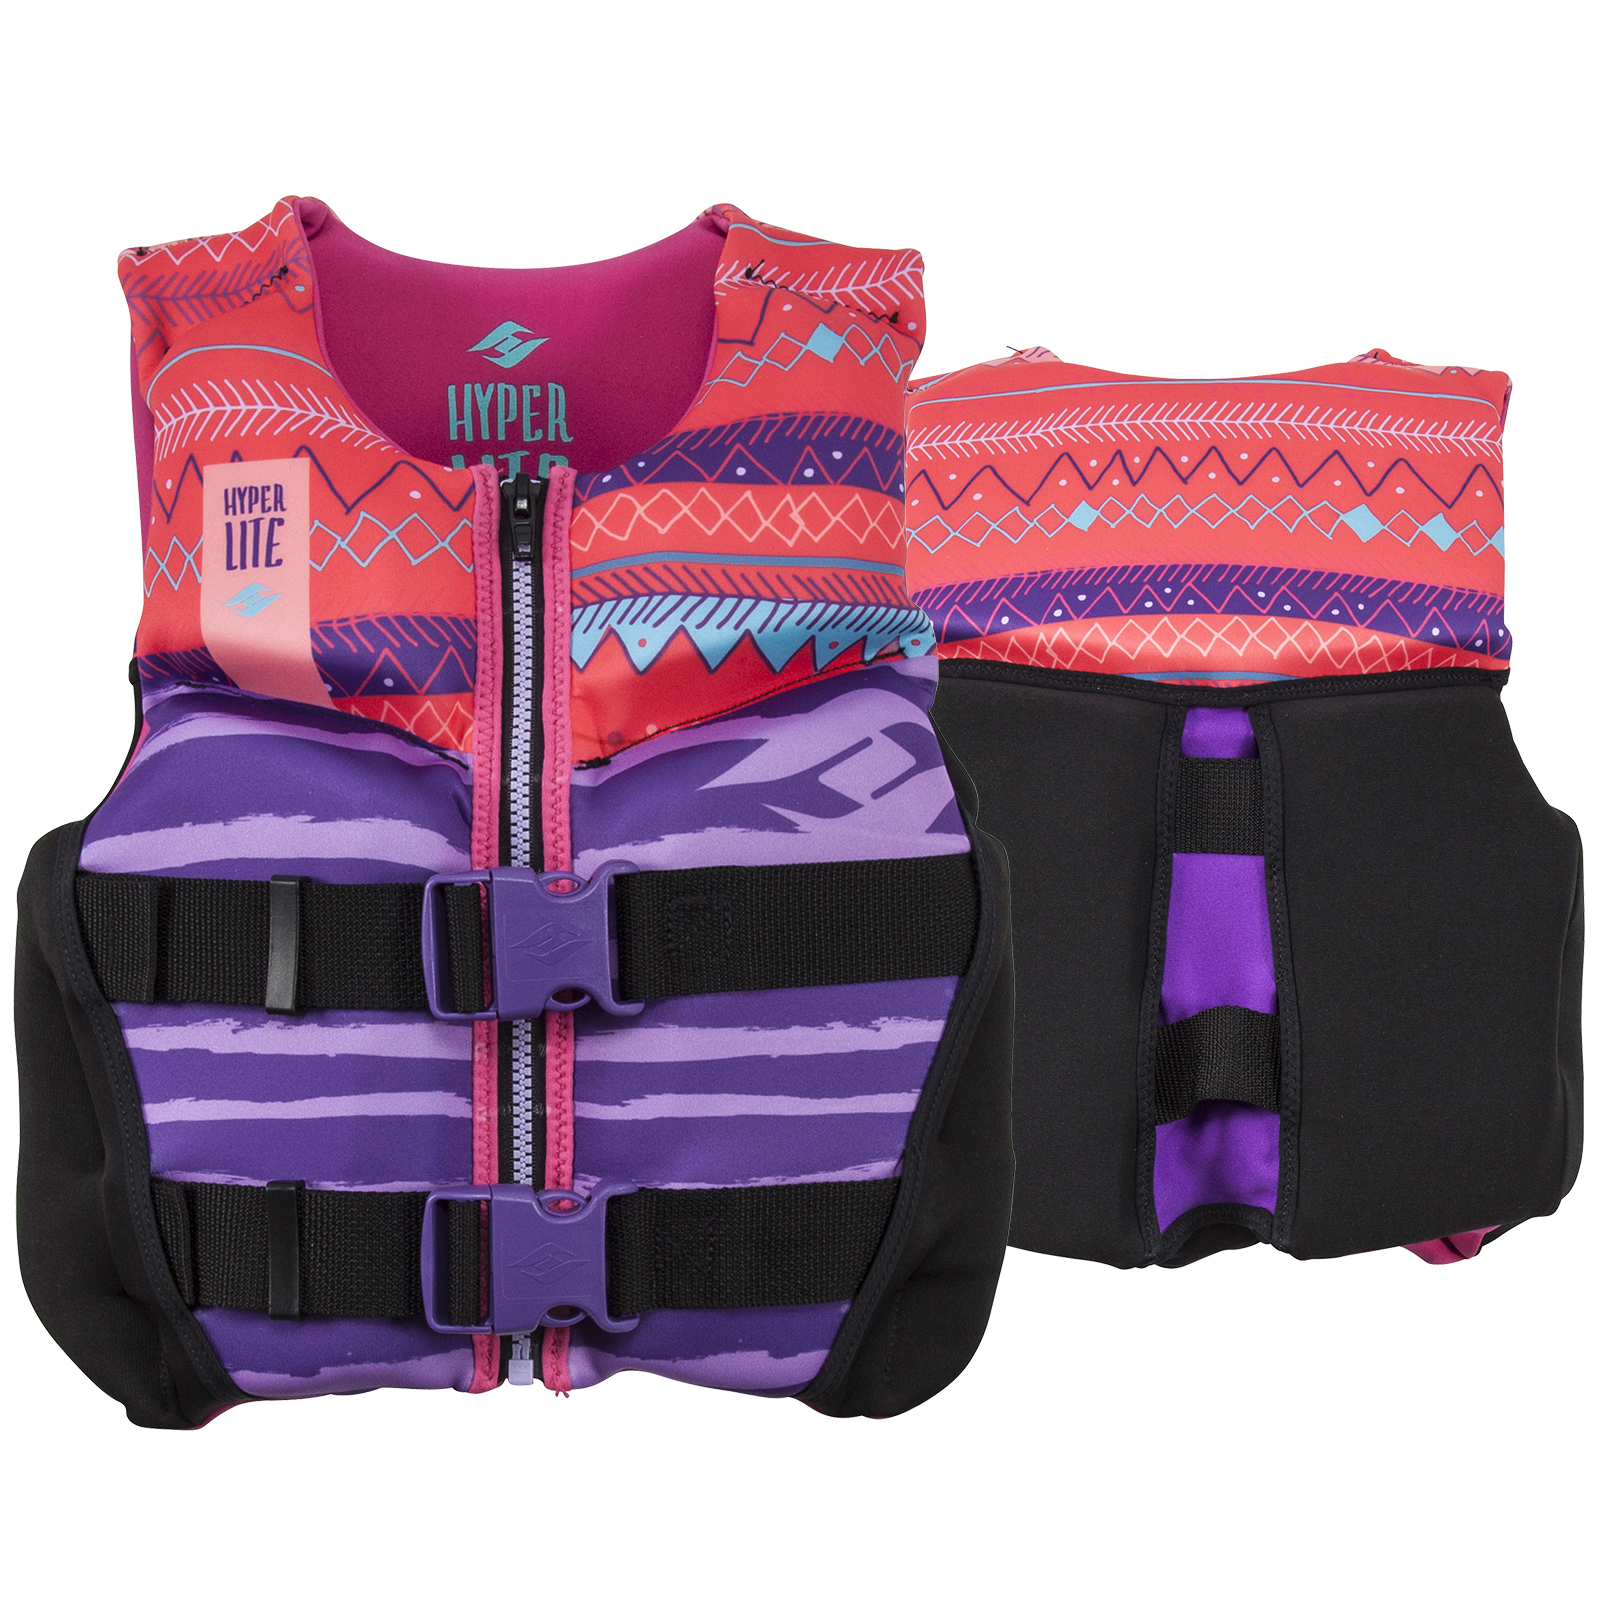 GIRL'S YOUTH INDY NEO VEST SM 22-40KG HYPERLITE 2018